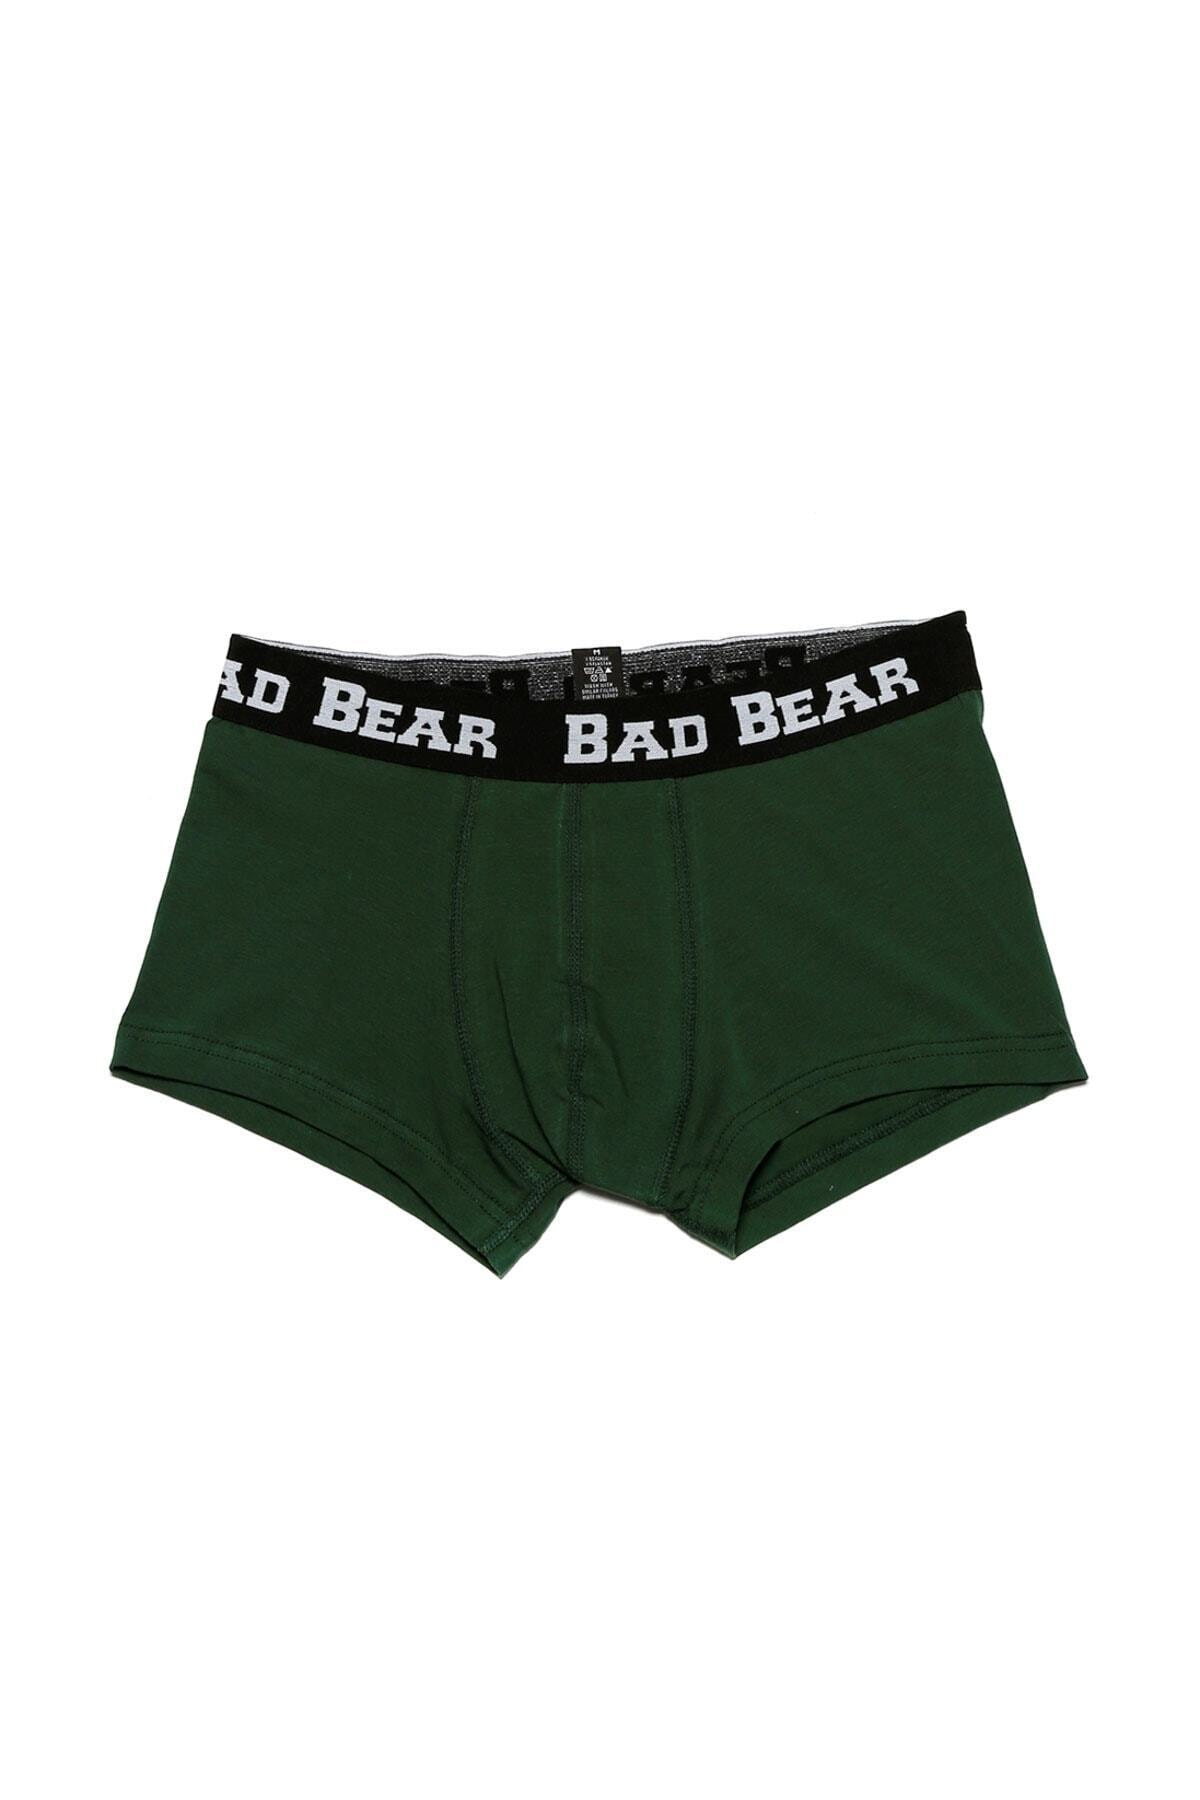 Bad Bear SOLID FOREST 1